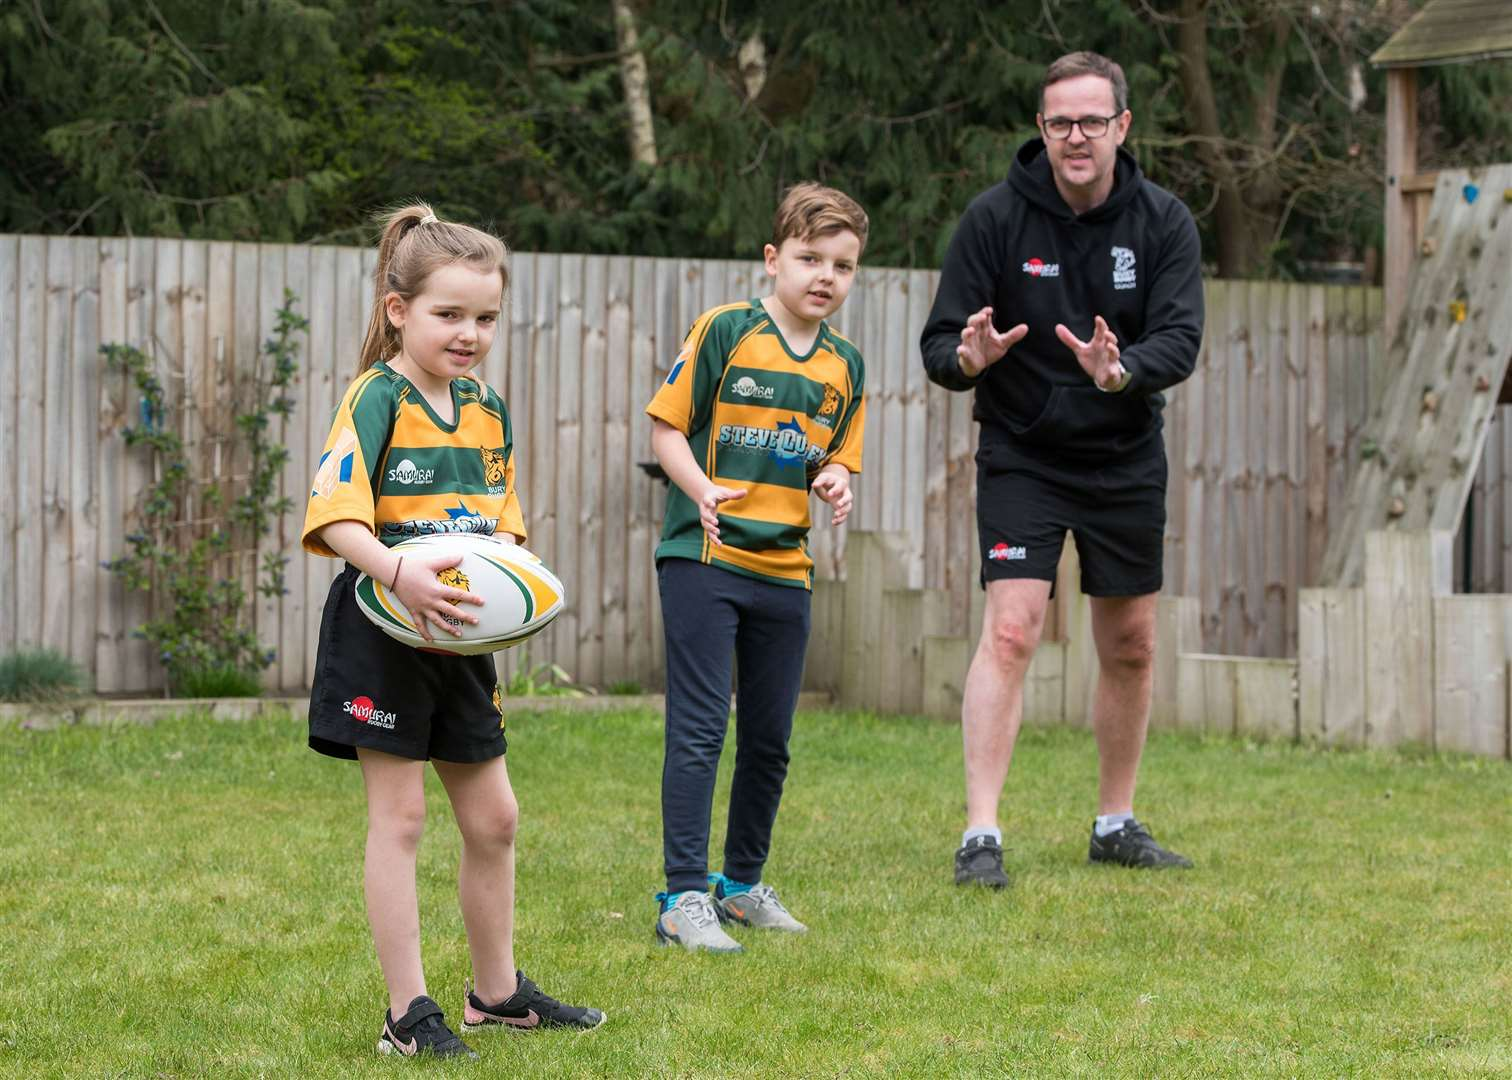 Bury rugby club minis' chairman starts a virtual pass..Bury St Edmunds Rugby Club Minis section have been keeping engaged during the lockdown through a virtual pass which is now over 1,000 views. .Minis chairman Craig Germeney started it off with his 2 children. Monty 10 and Delilah 7. Picture by Mark Westley. (32799348)